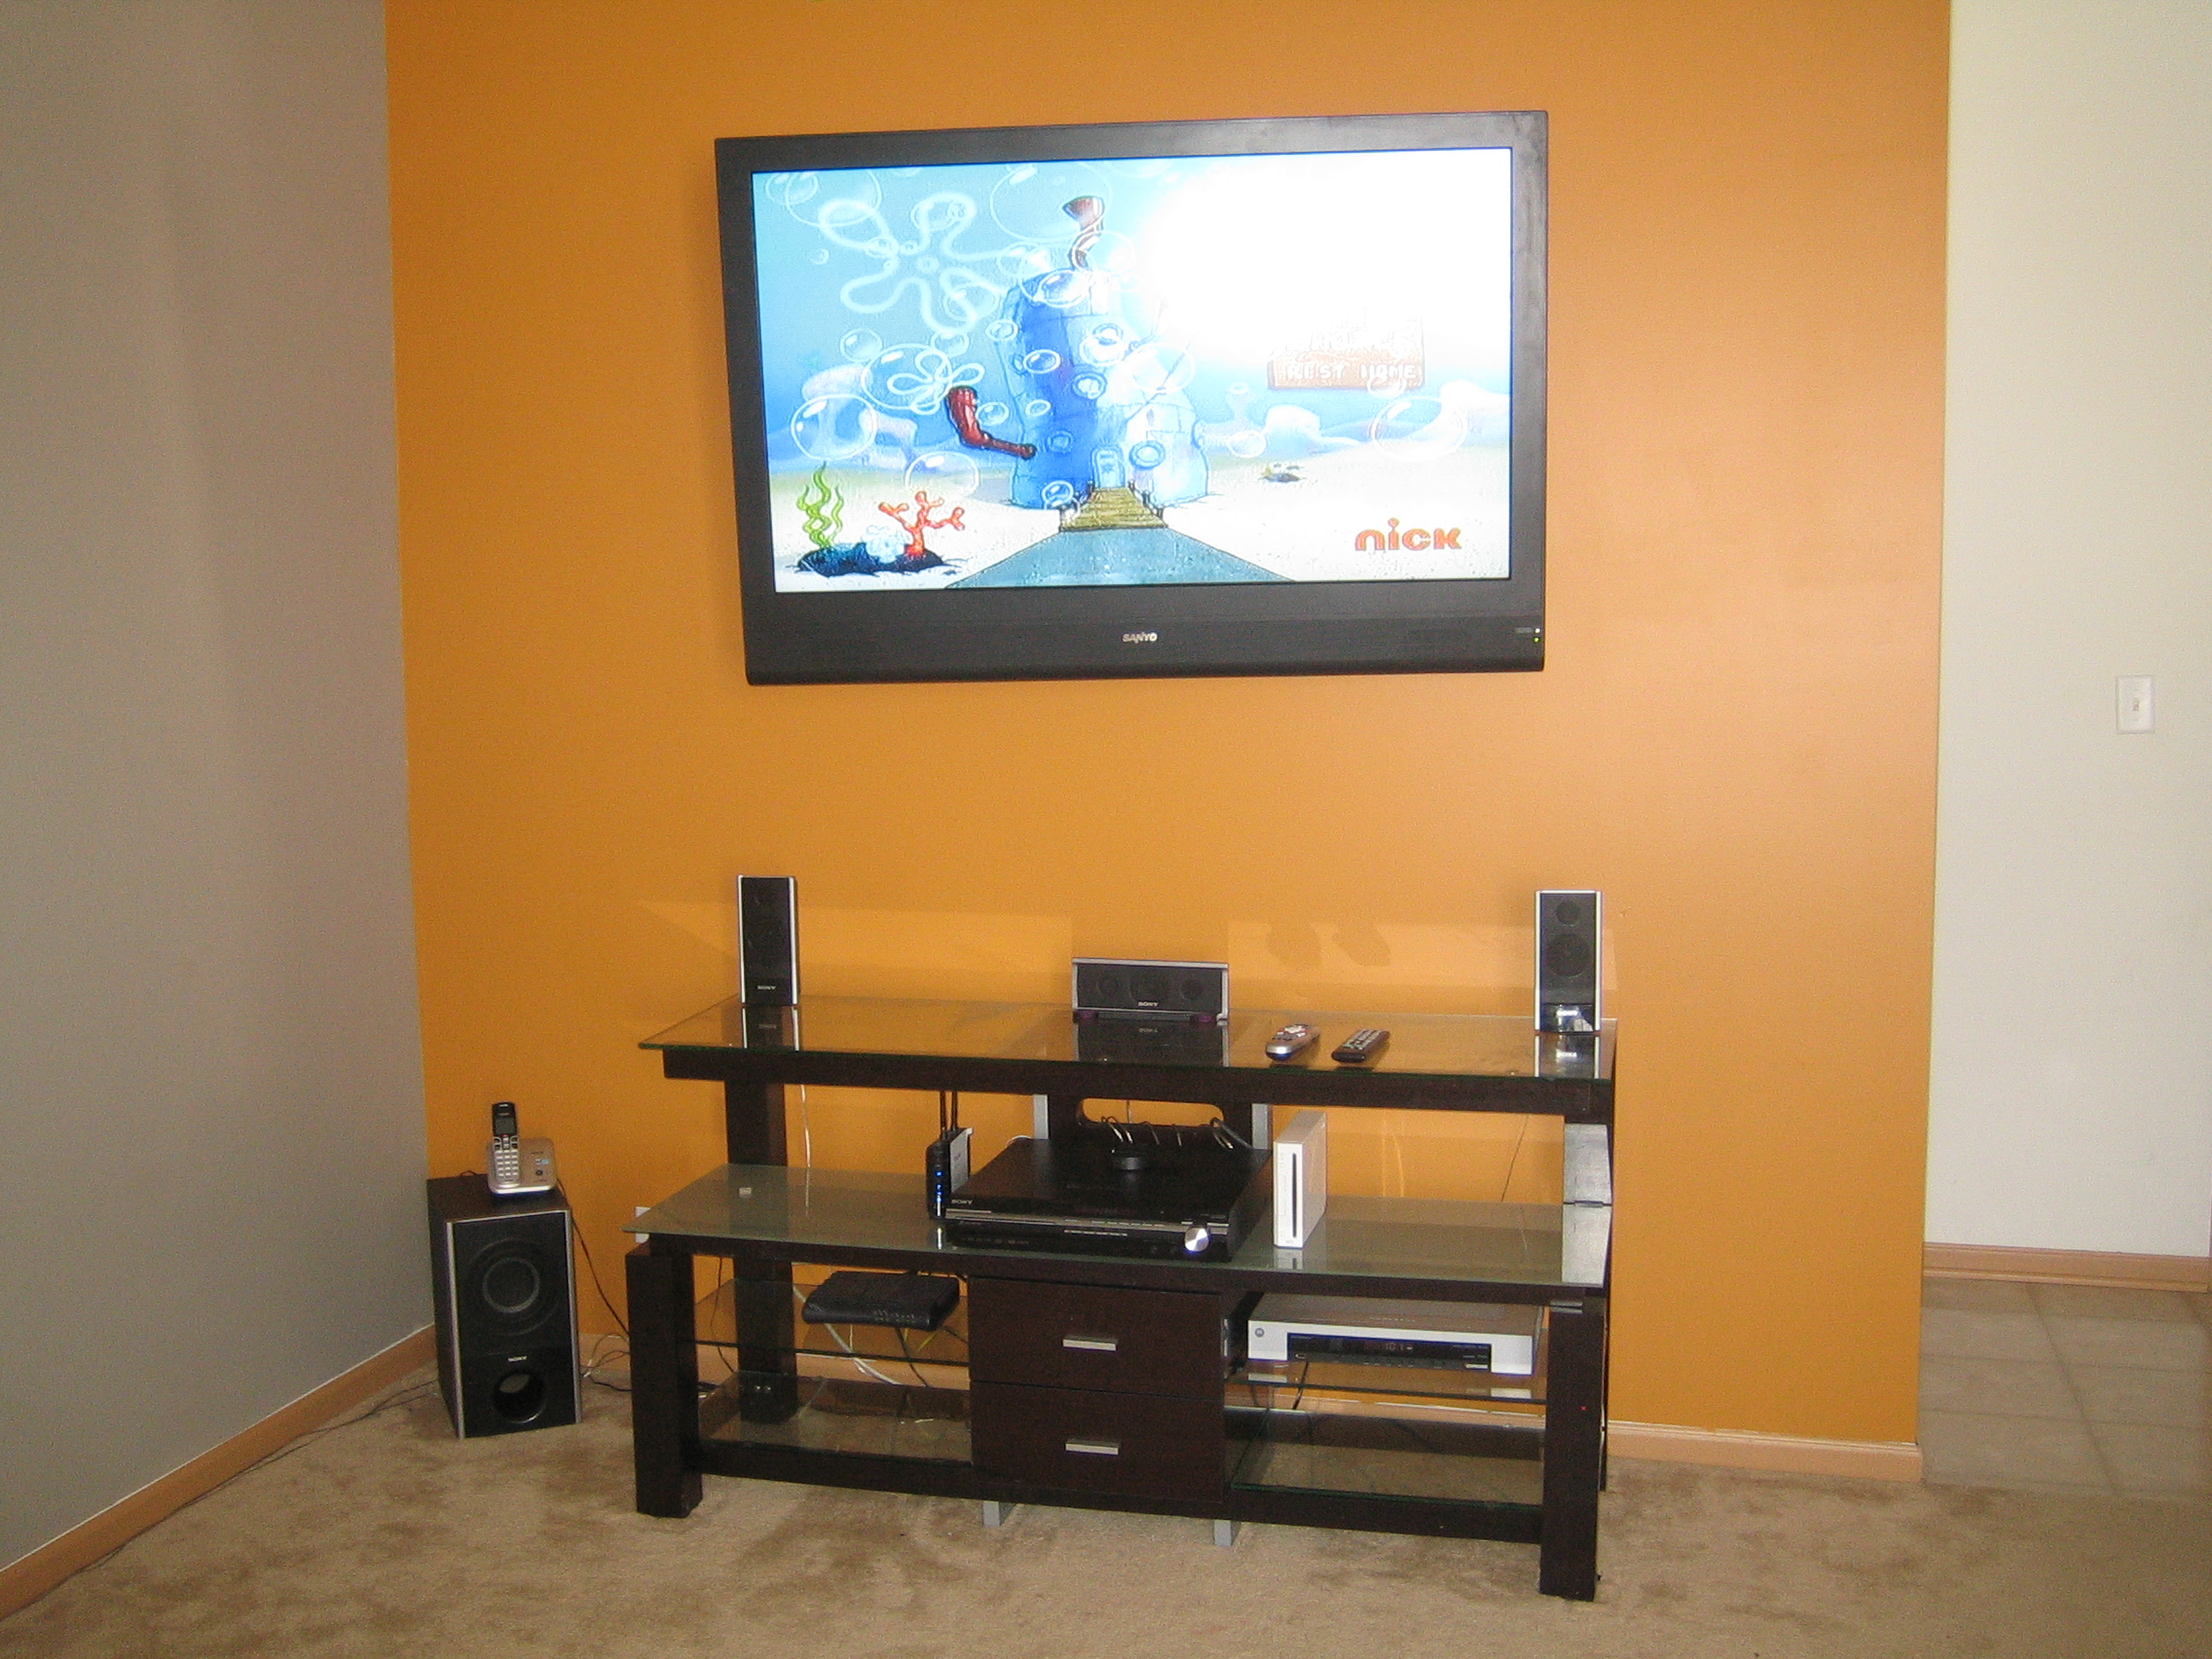 Best Tv Mount Service By Music Evolution Installs Home Installing Theater Wiring Wires Cables Are Ran Through Wall Cavity And An Electric Outlet Is Installed Directly Behind The